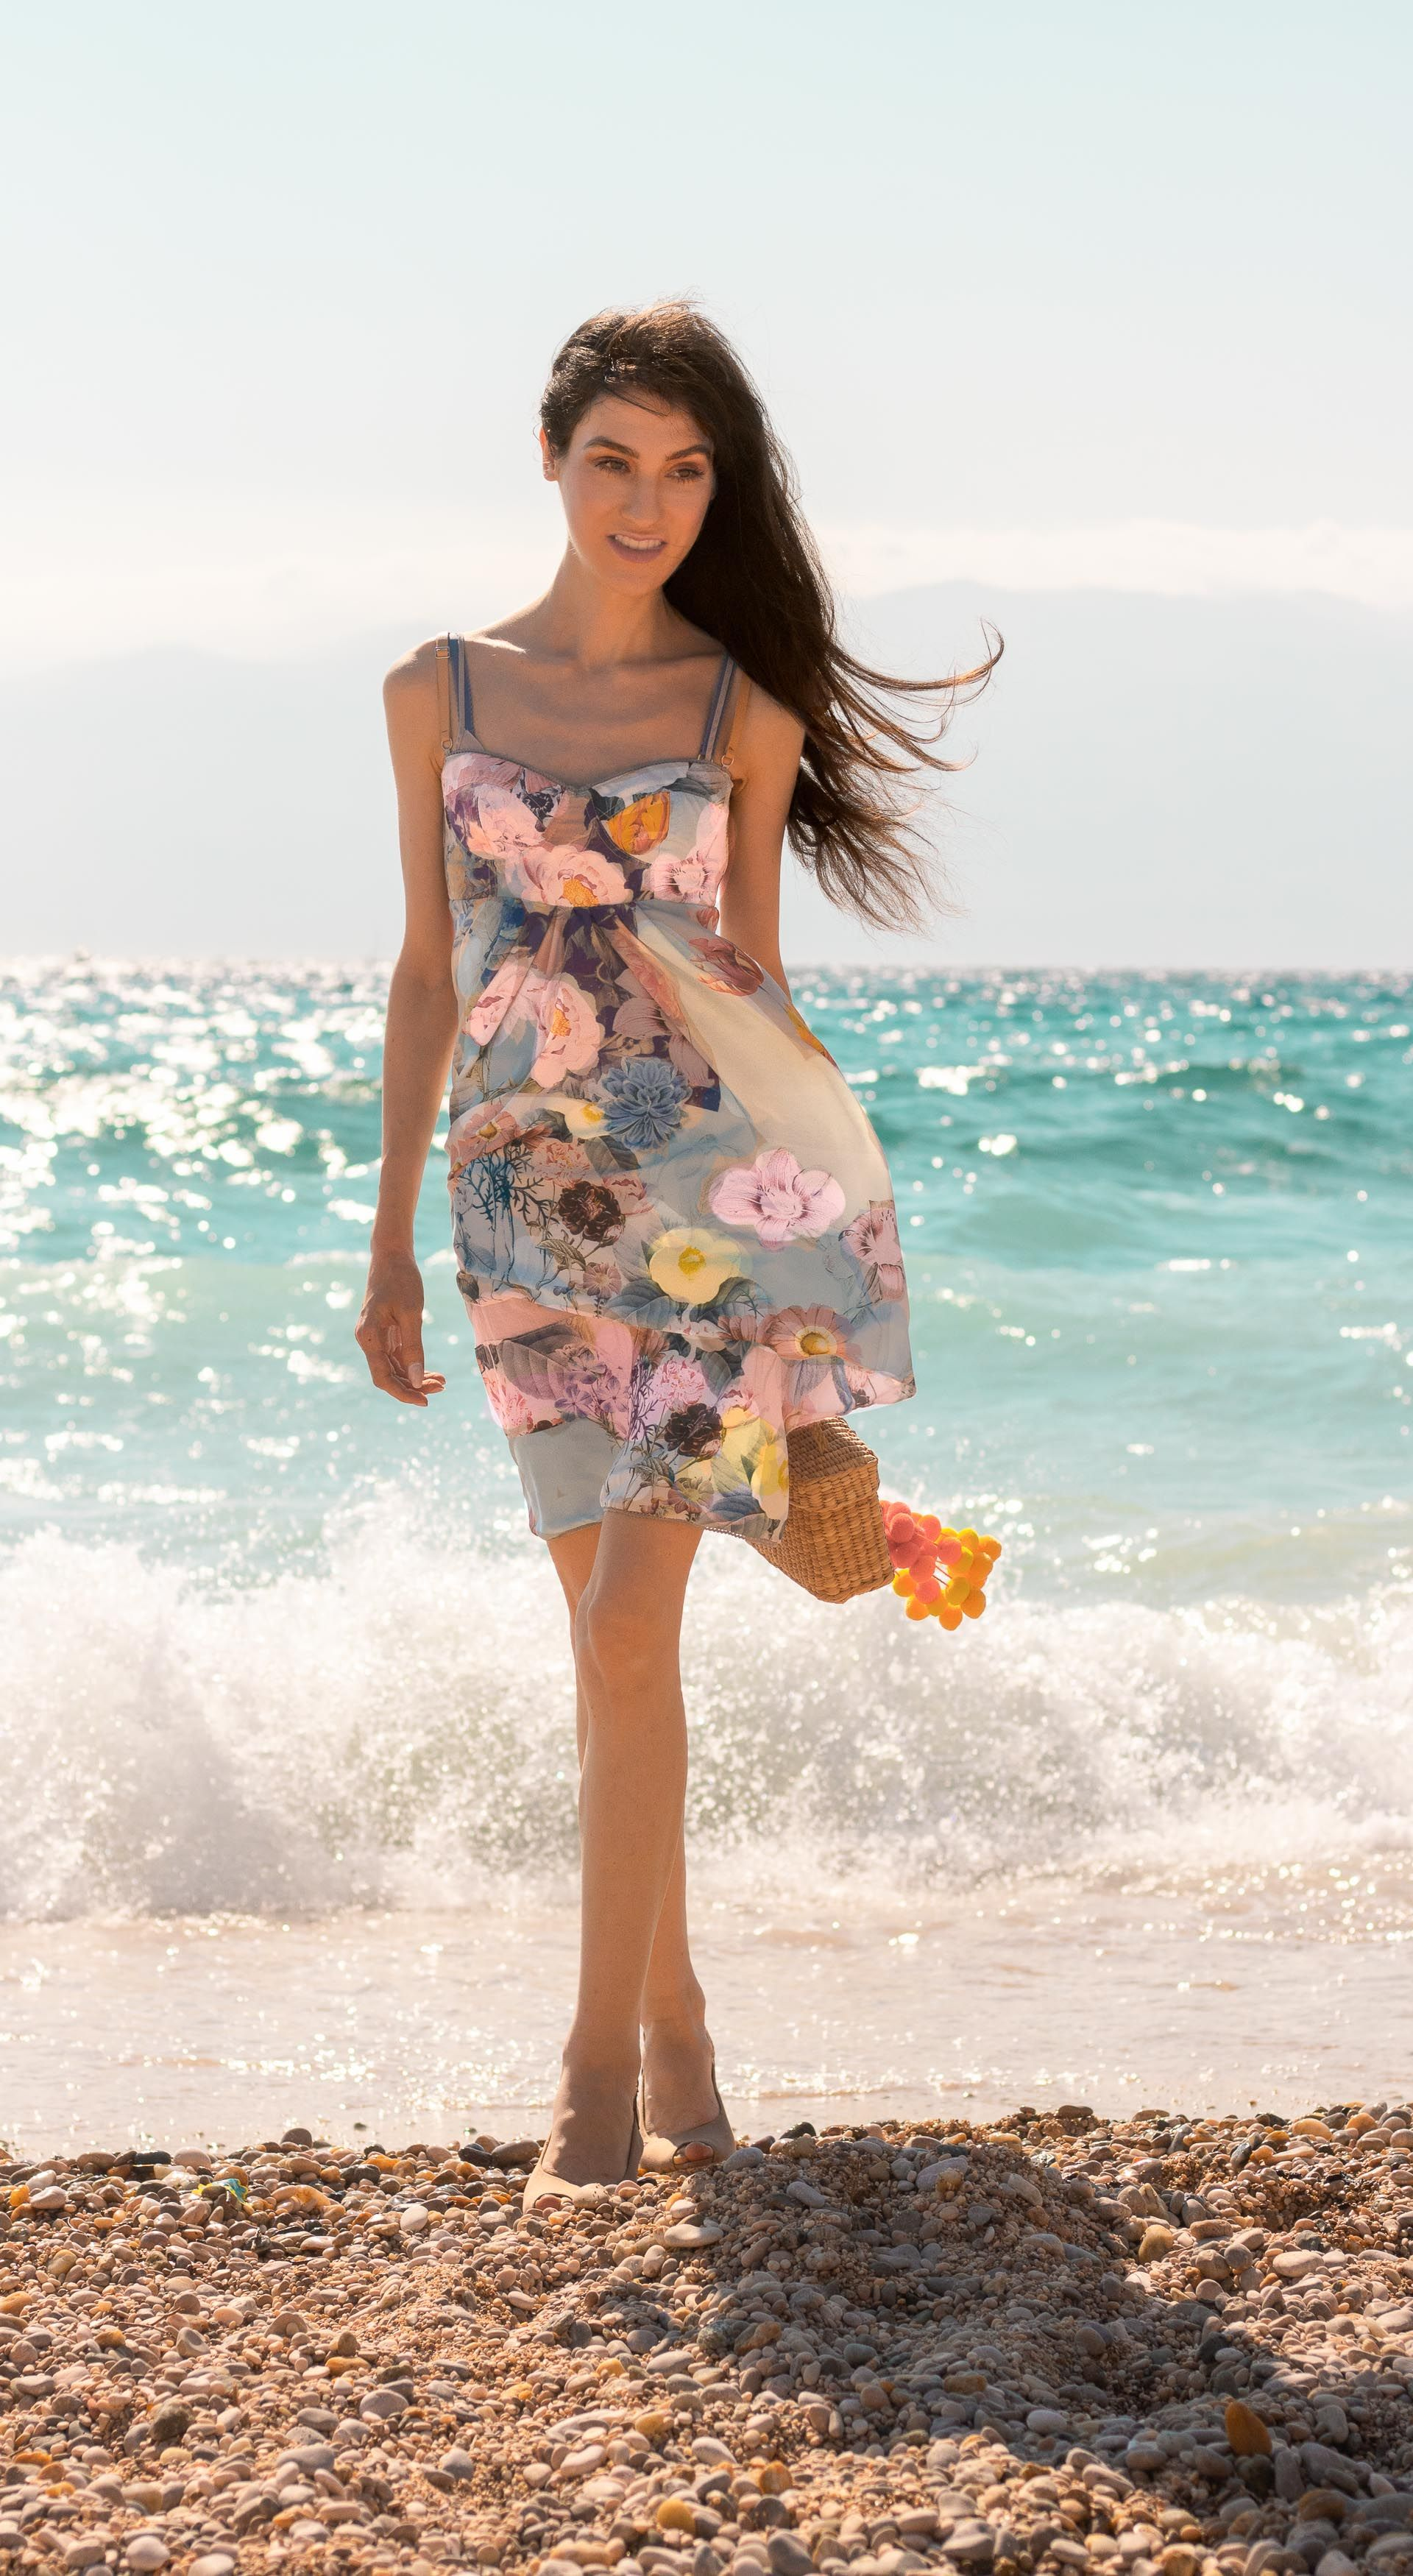 This Is One Of The Most Beautiful Wedding Guest Dresses Here Is How To Wear It For A Beach Wedding Wedding Guest Dress Wedding Attire Guest Beach Wedding Guest Attire [ 3500 x 1920 Pixel ]